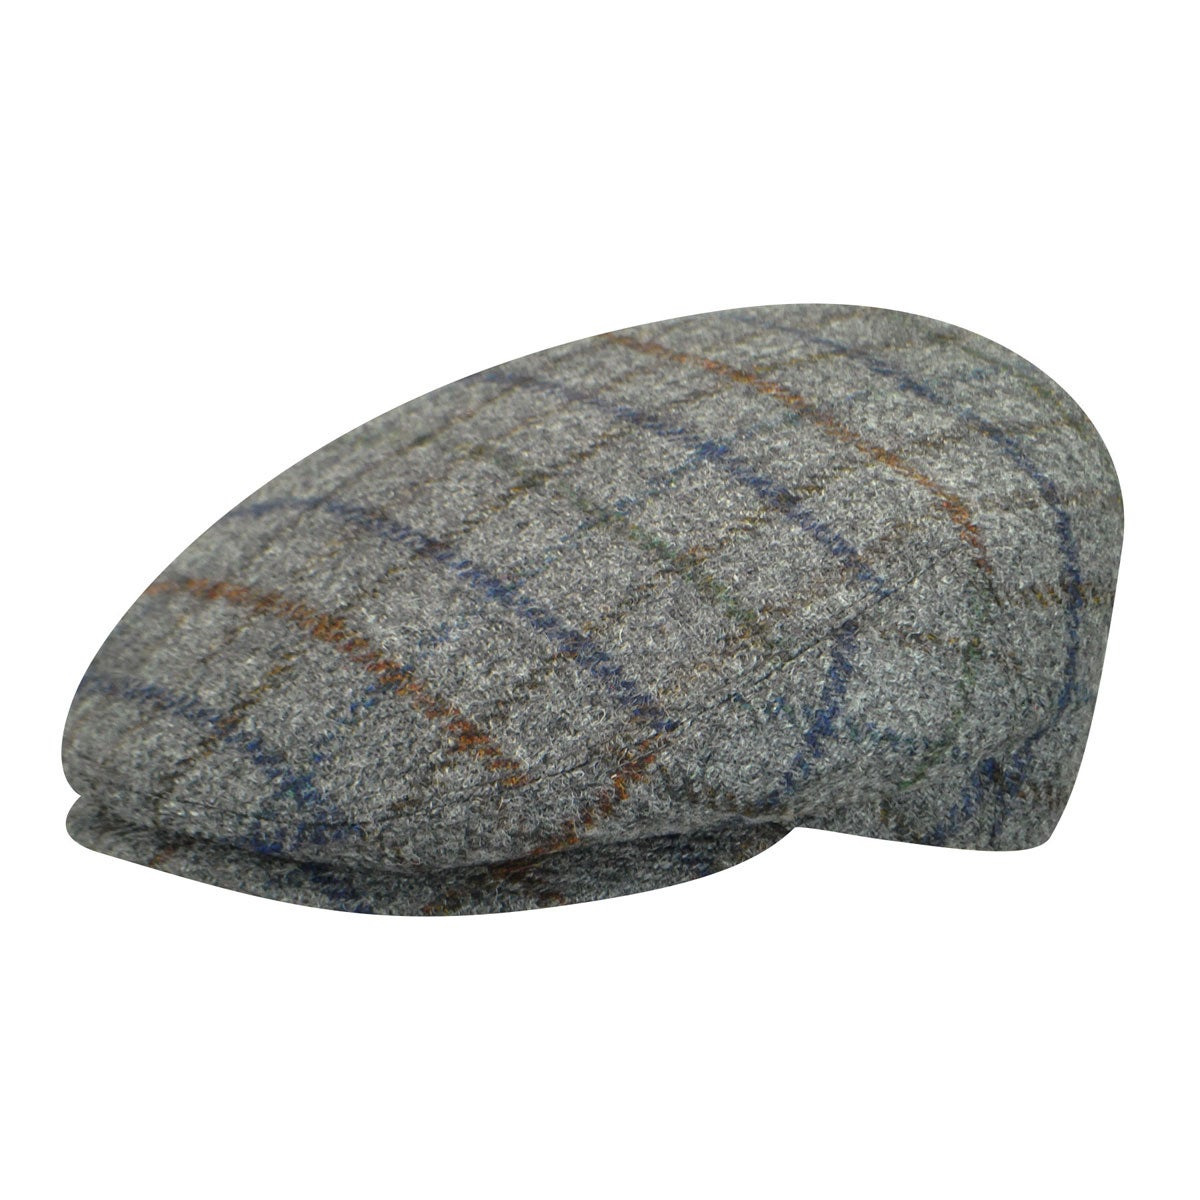 60s Men's Mod Fashion – American Style BB160430017 Wool Ivy Cap $93.75 AT vintagedancer.com